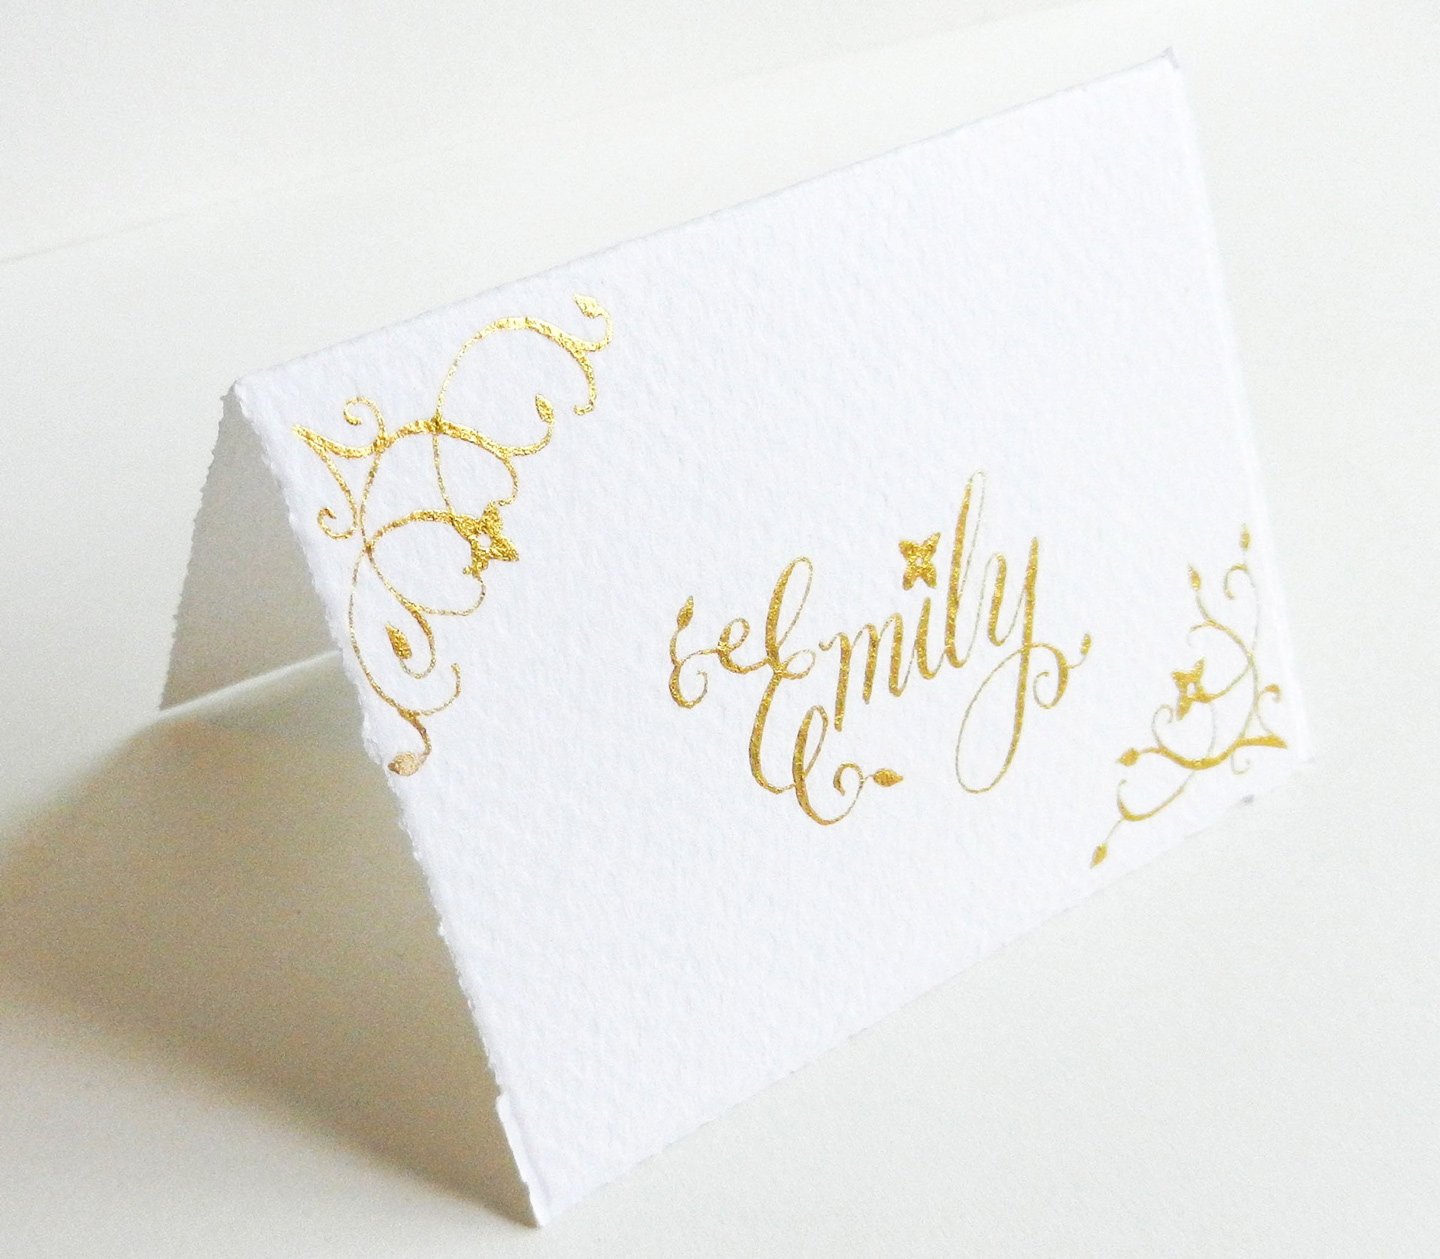 Flourish Formal Style Placecard Written with Gold Ink